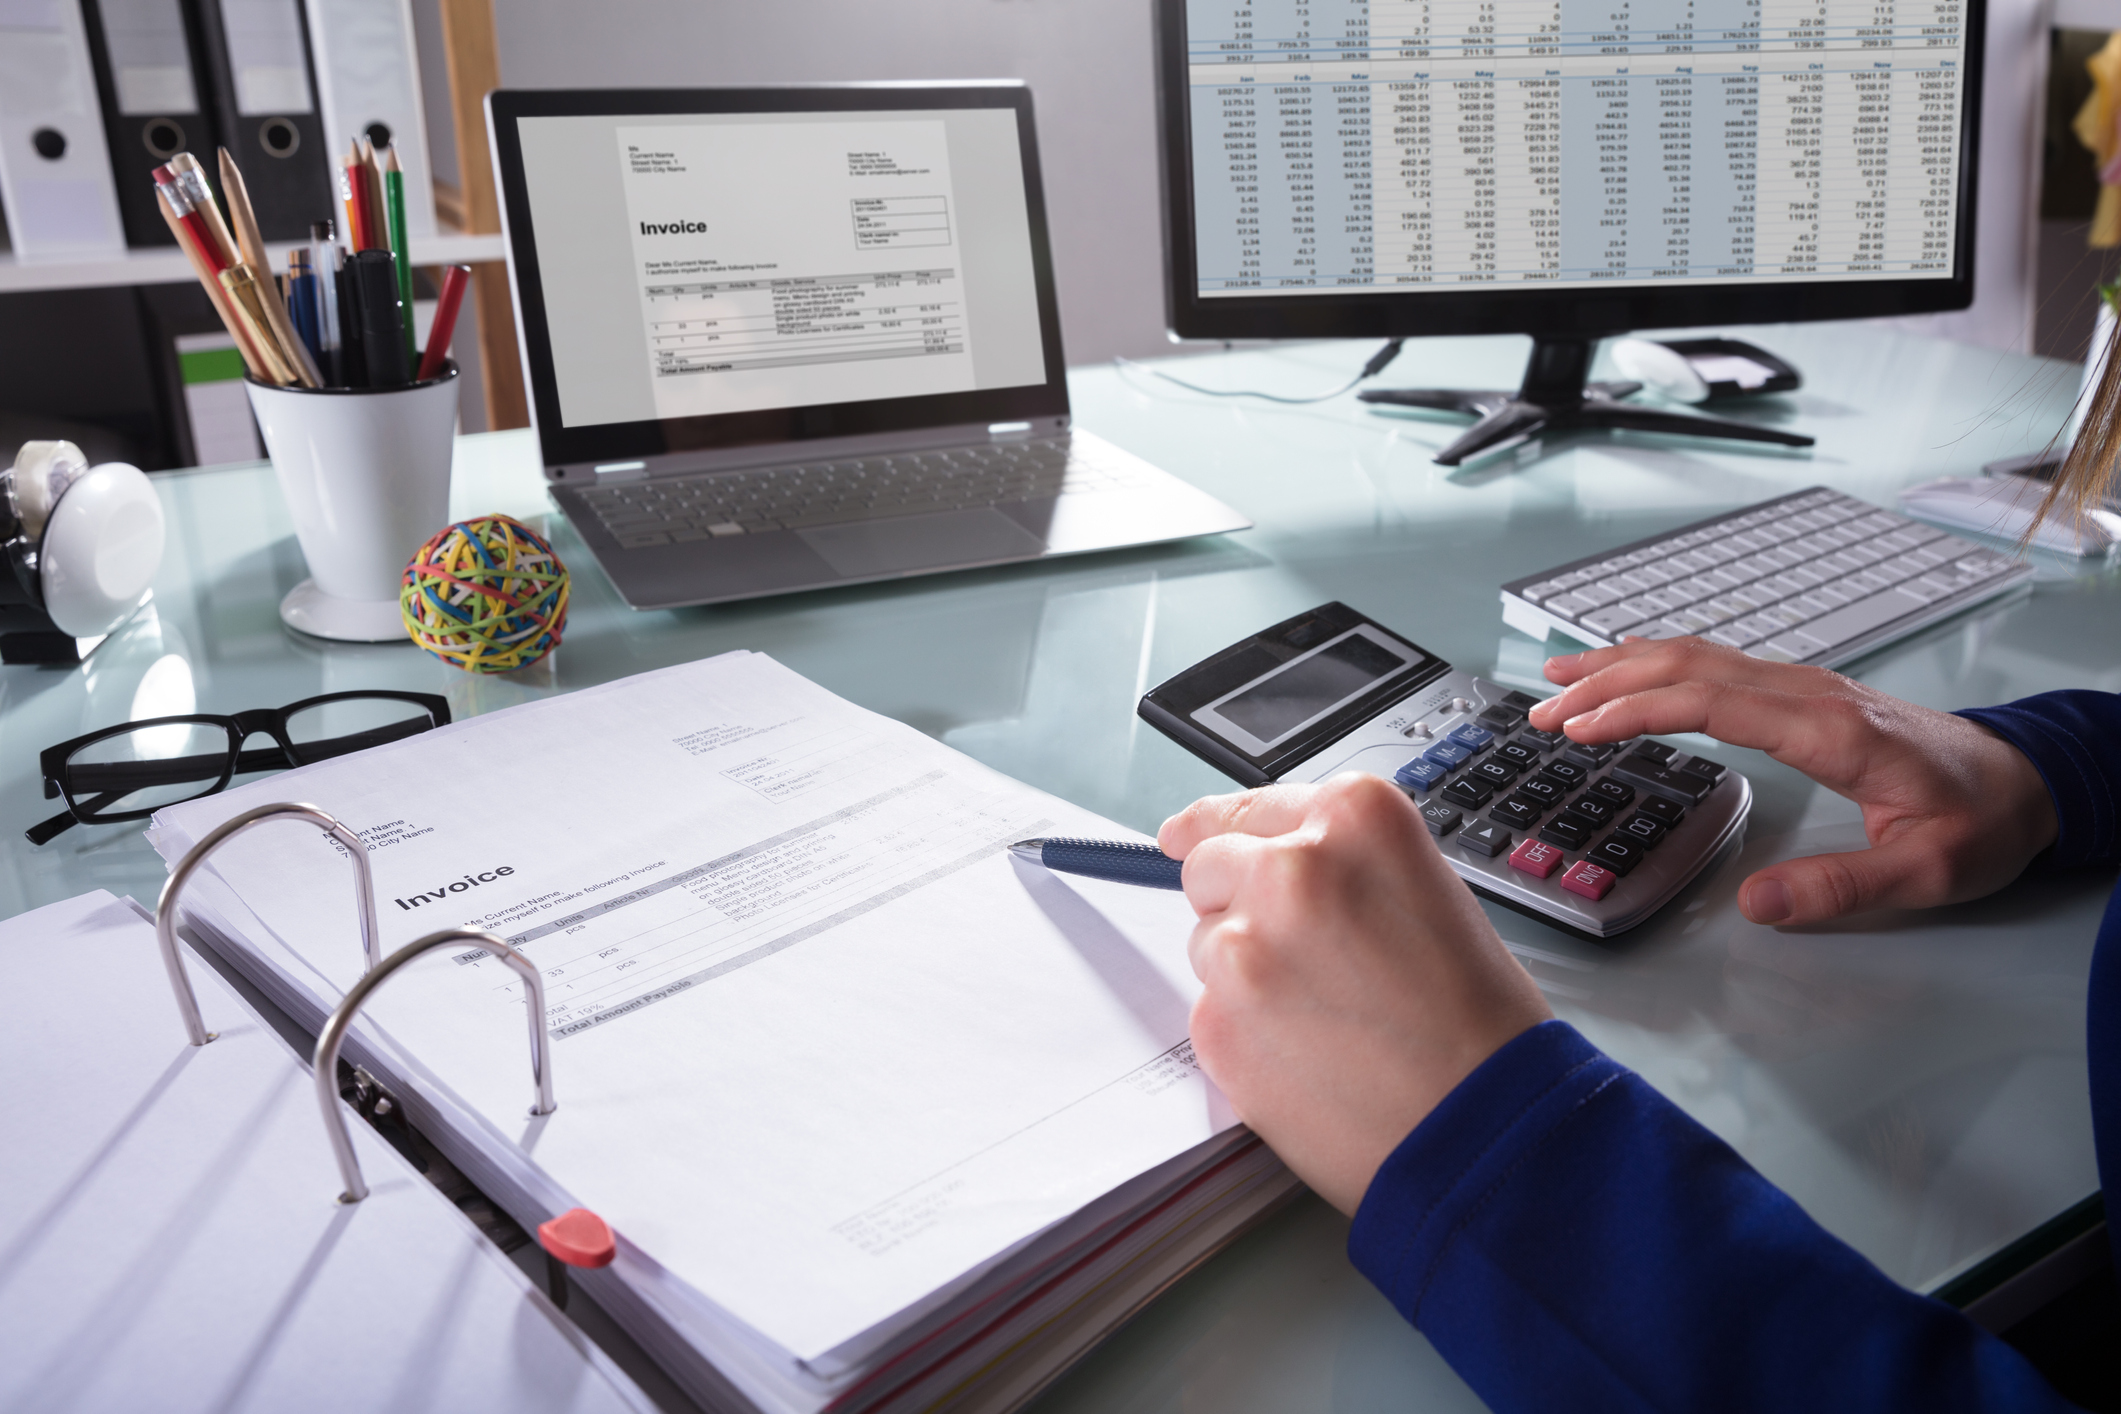 Top 5 reasons to use an ERP for all of your accounting needs